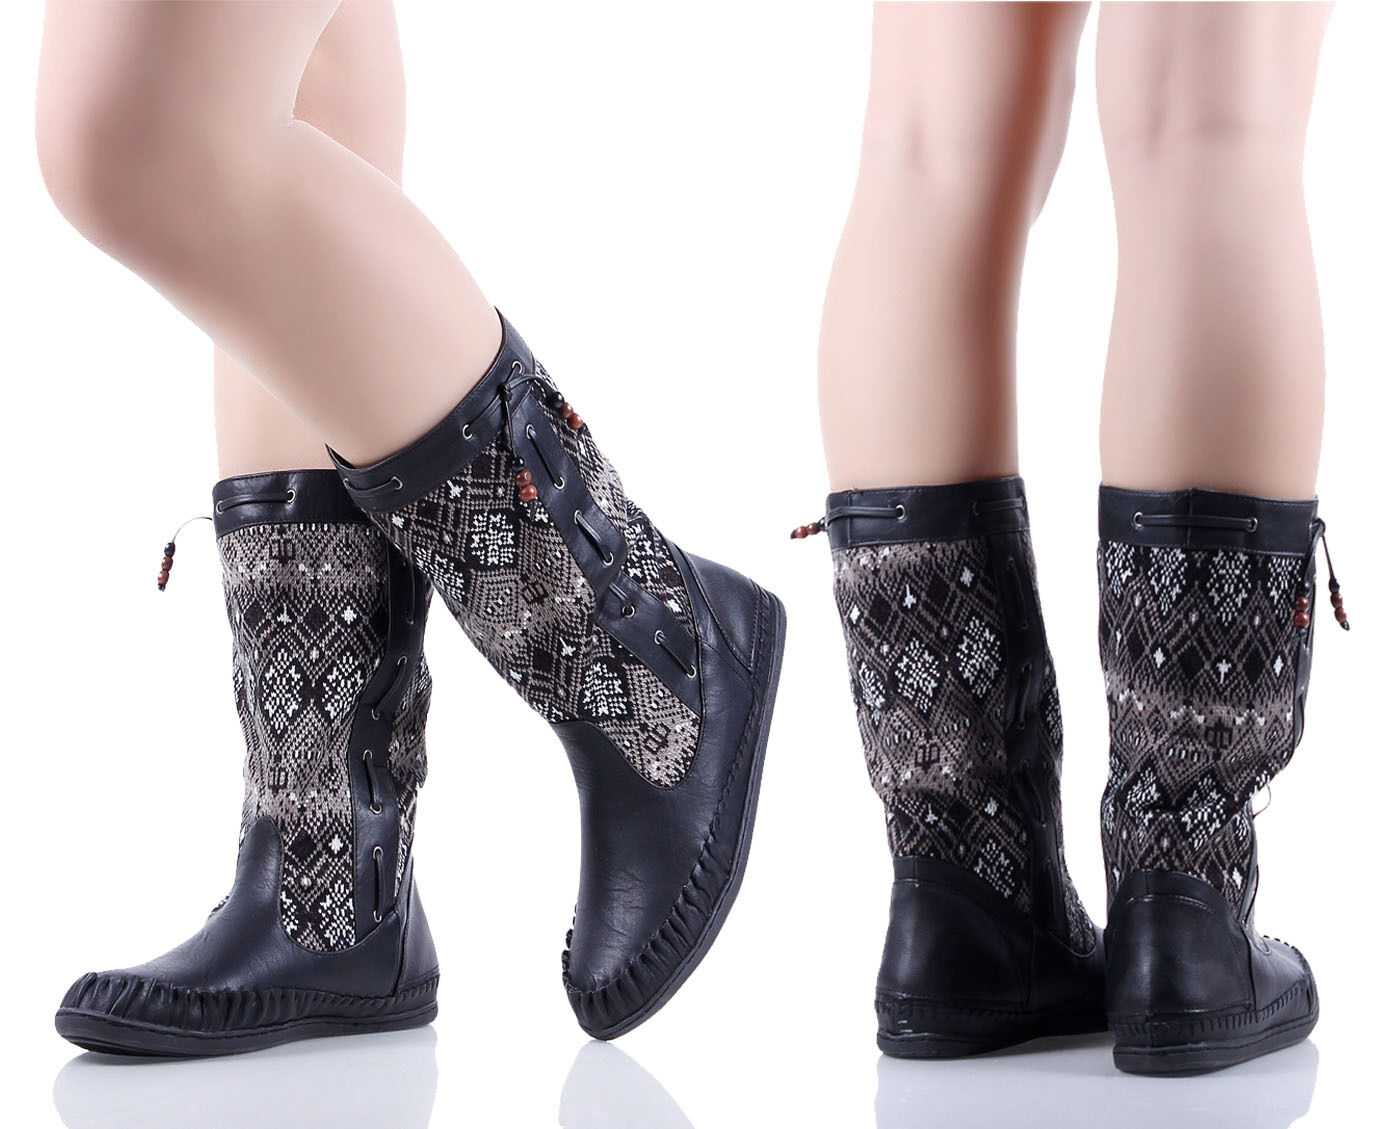 BAMBOO Black New Fashion Womens Mid-Calf Boots Flat Heel Shoes Size 5.5